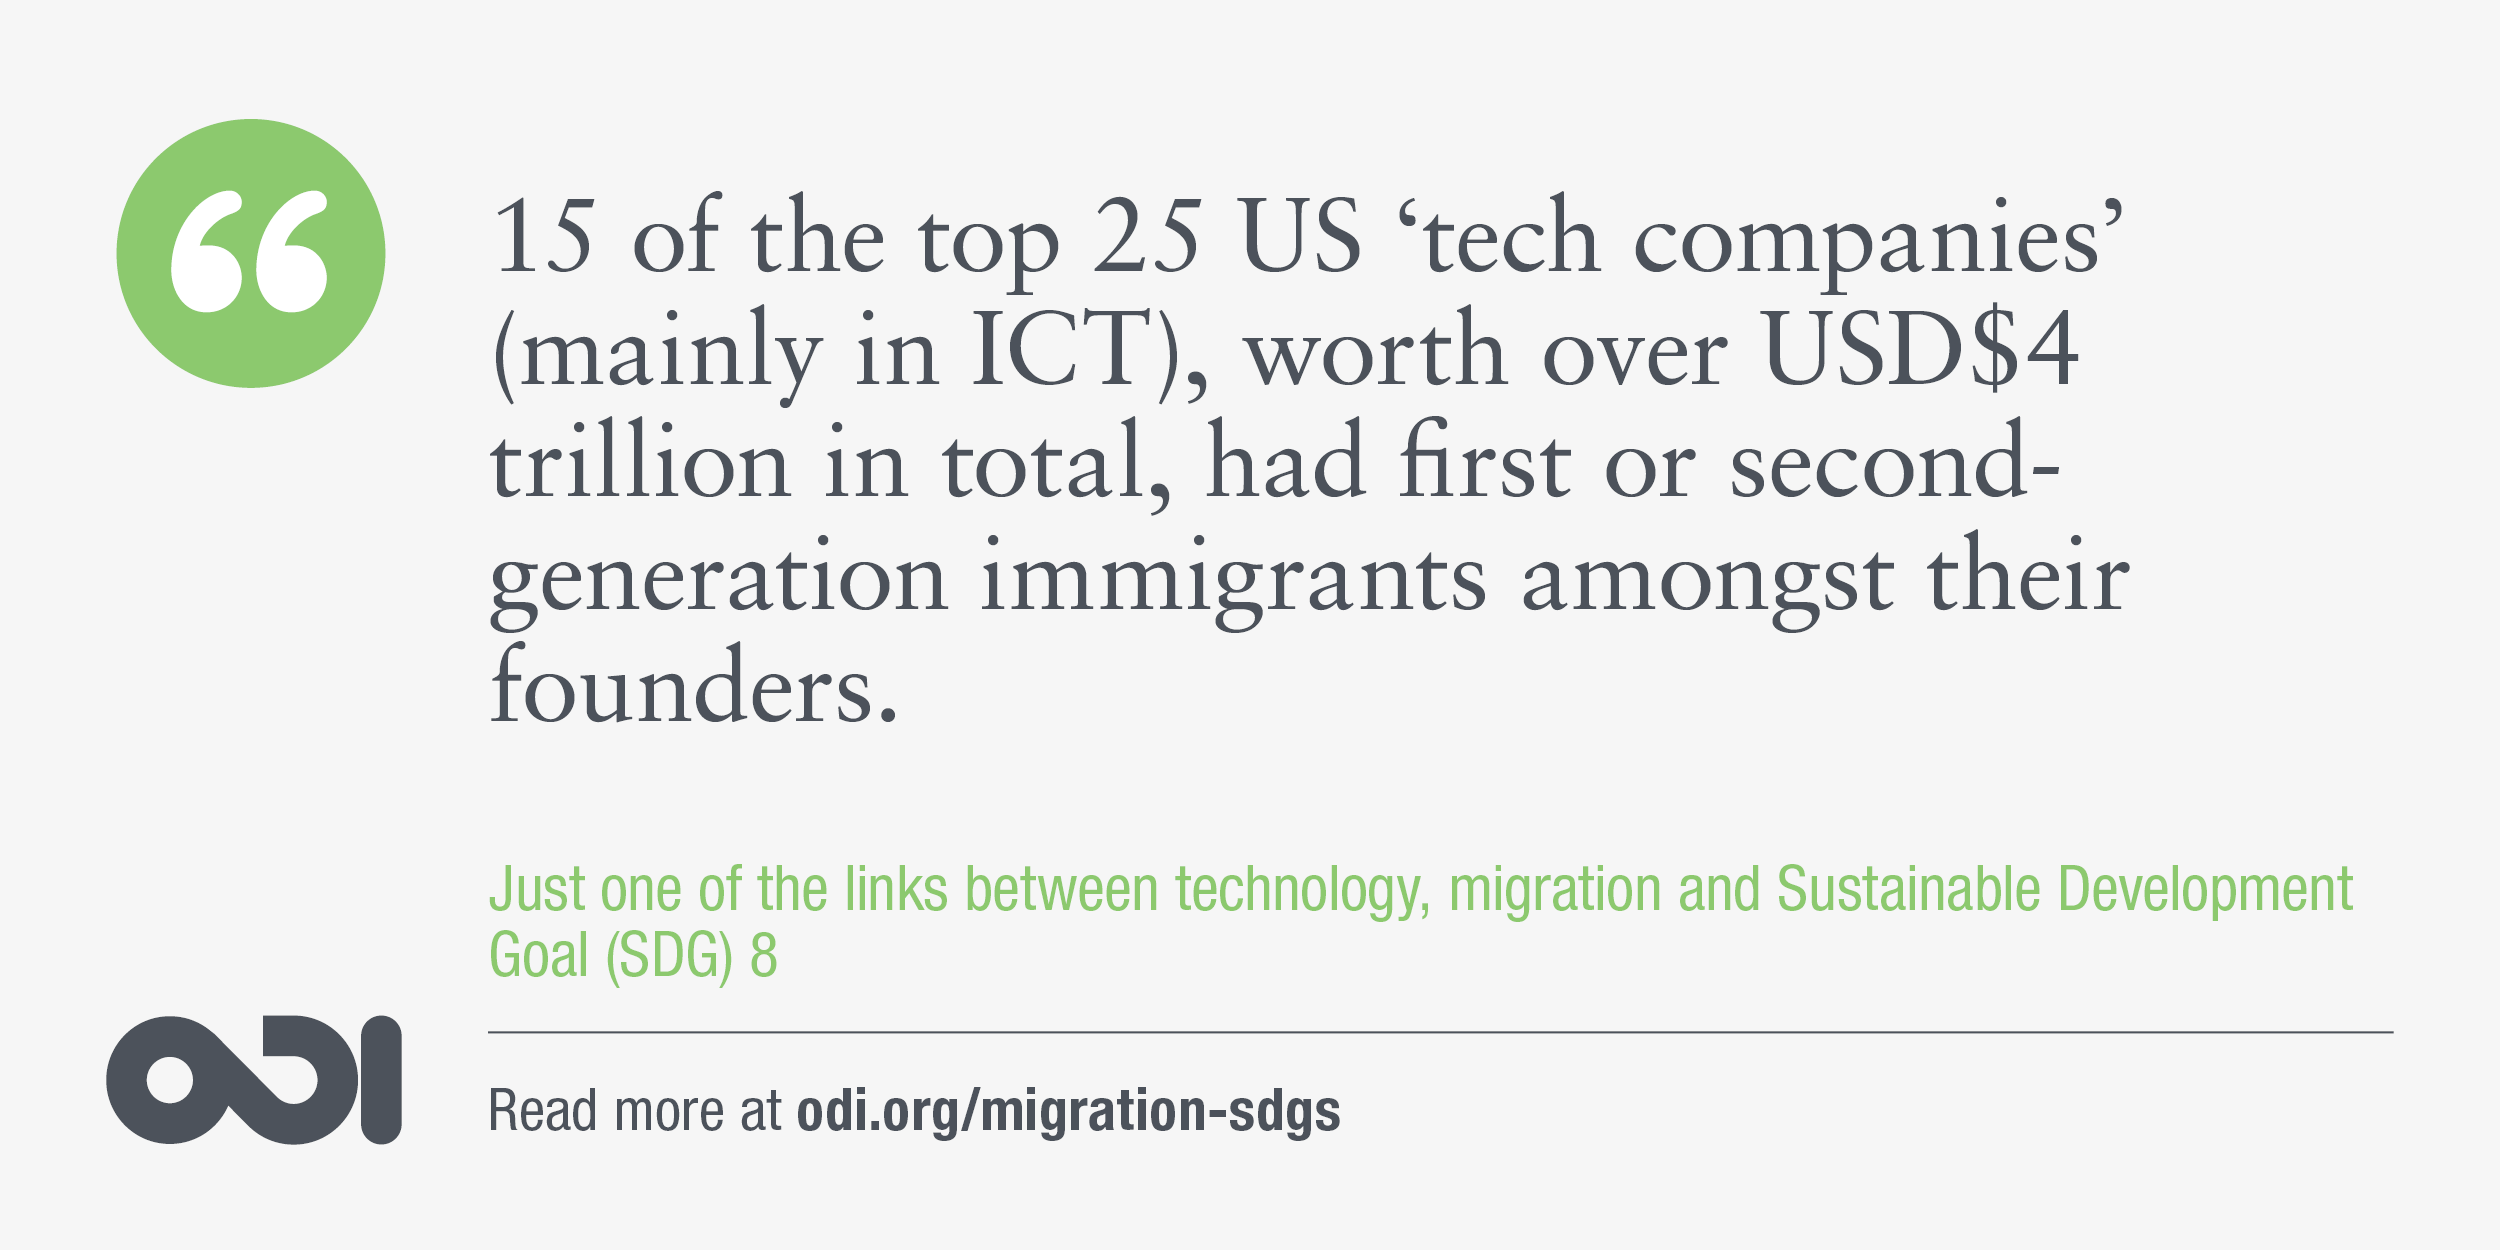 The links between technology, migration and SDG 8.